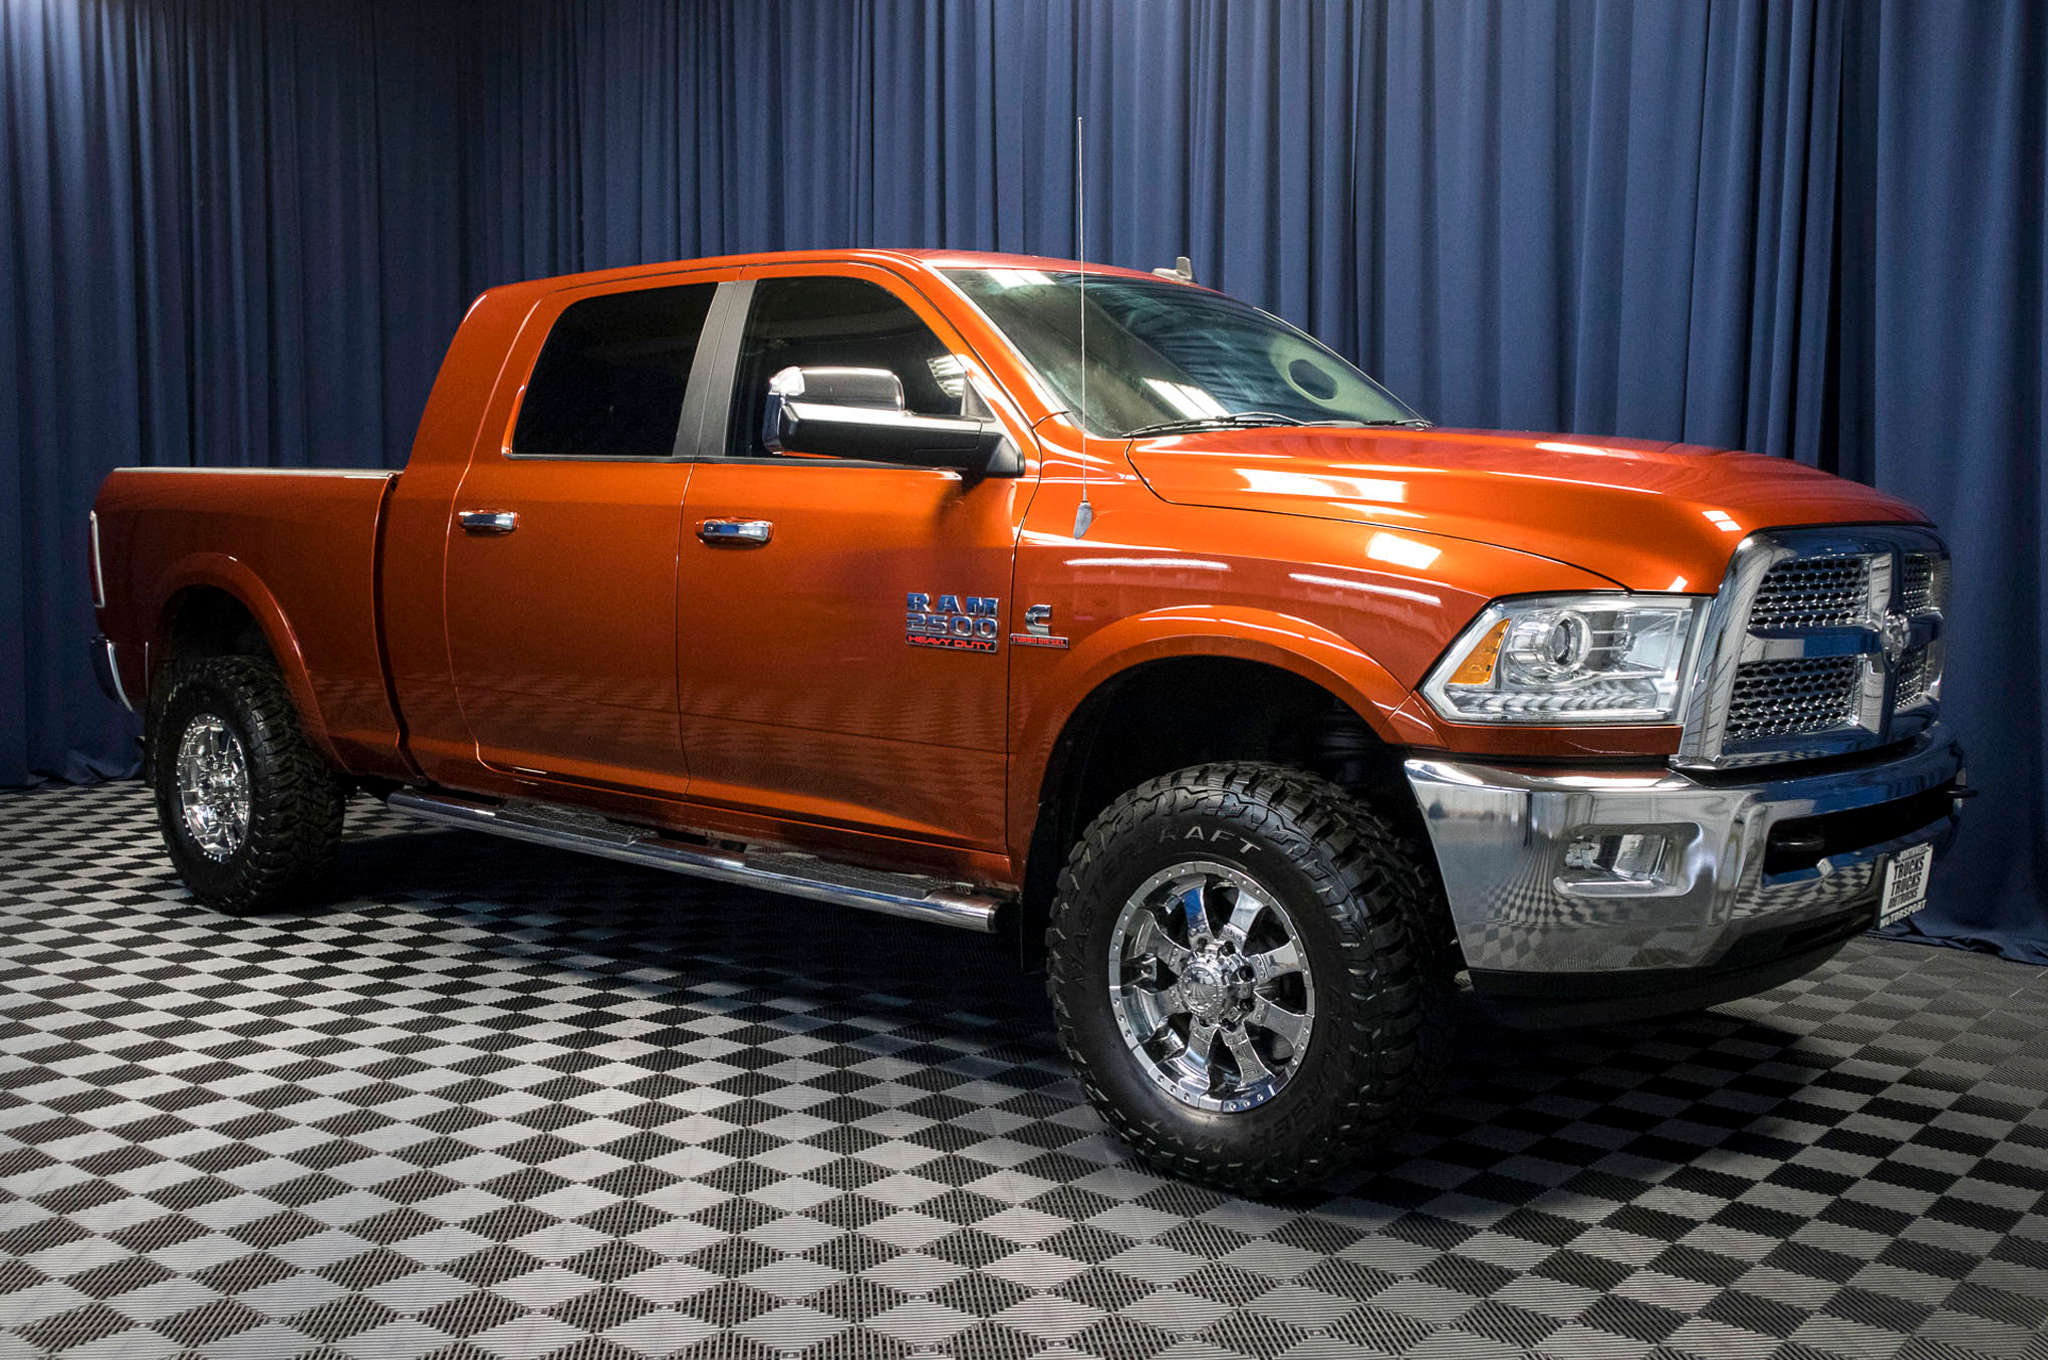 Used Lifted 2013 Dodge Ram 2500 Laramie 4x4 Diesel Truck For Sale ...